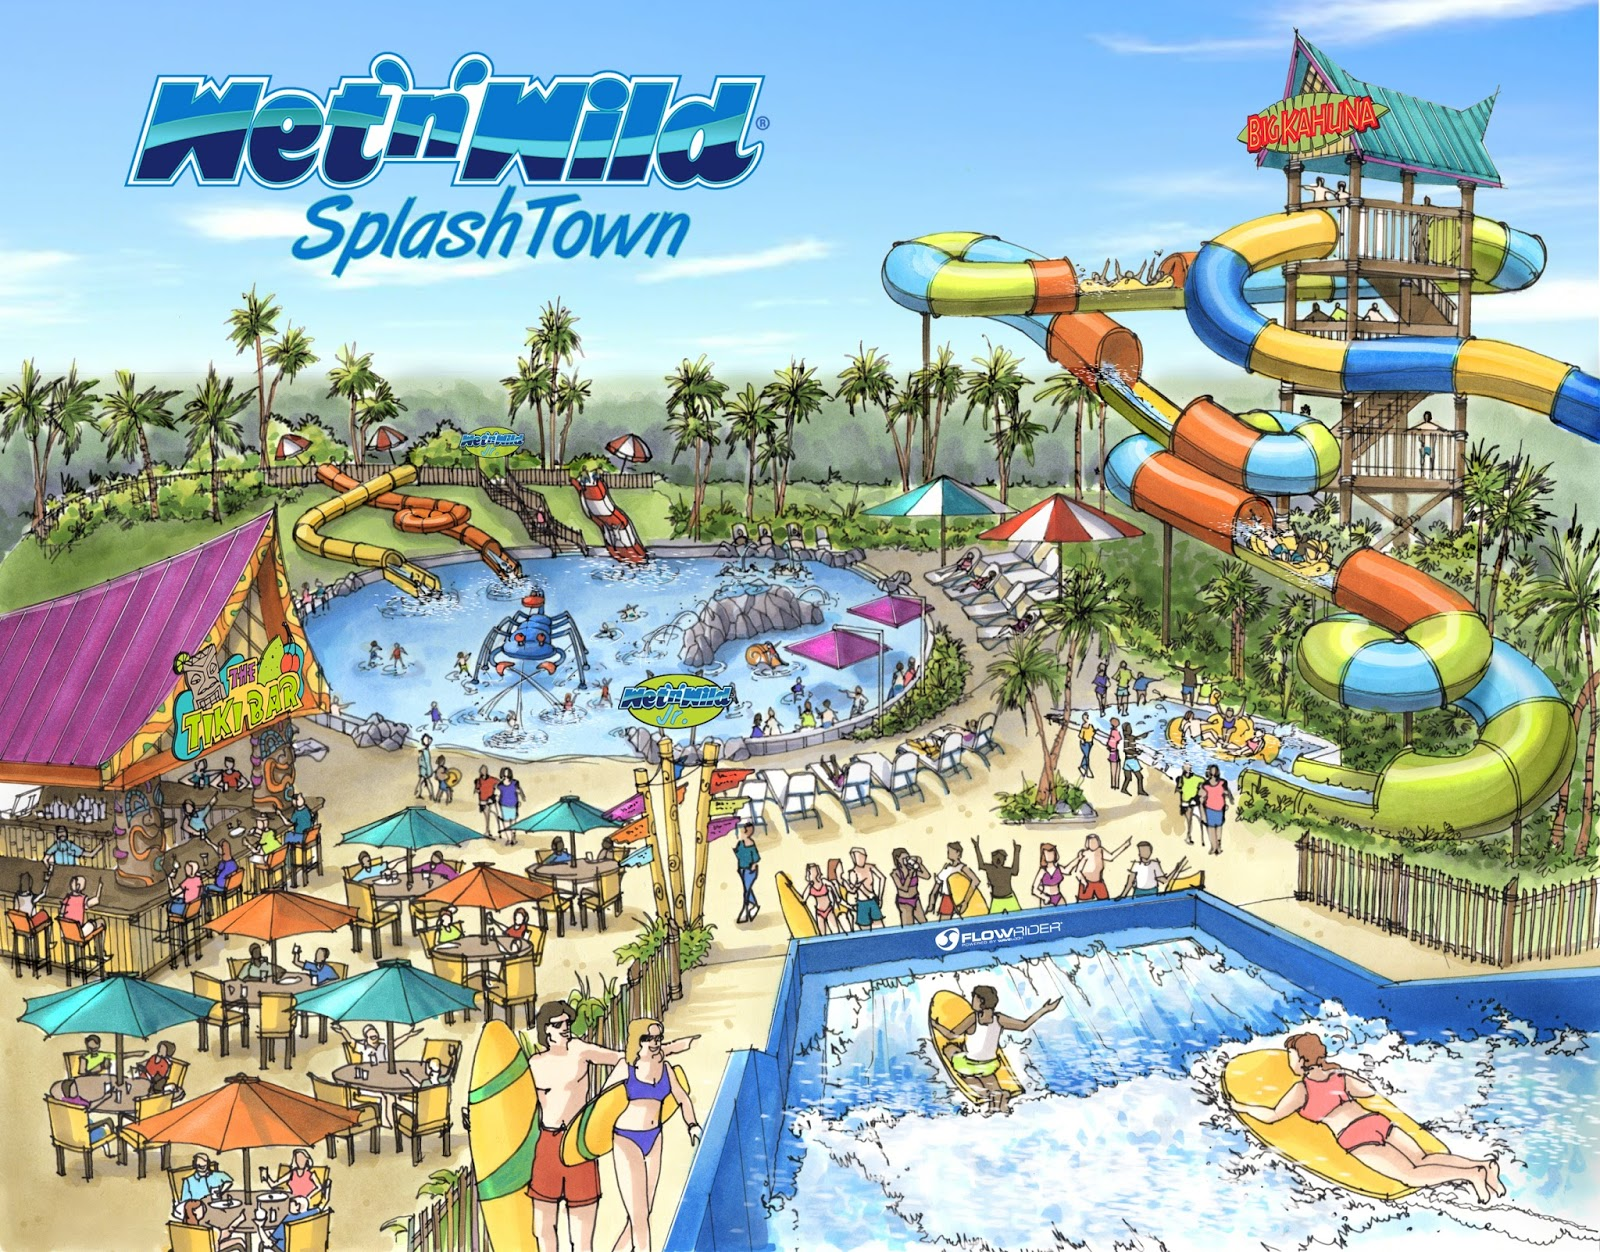 Newsplusnotes Another New Wet N Wild Water Park Opening In 2017